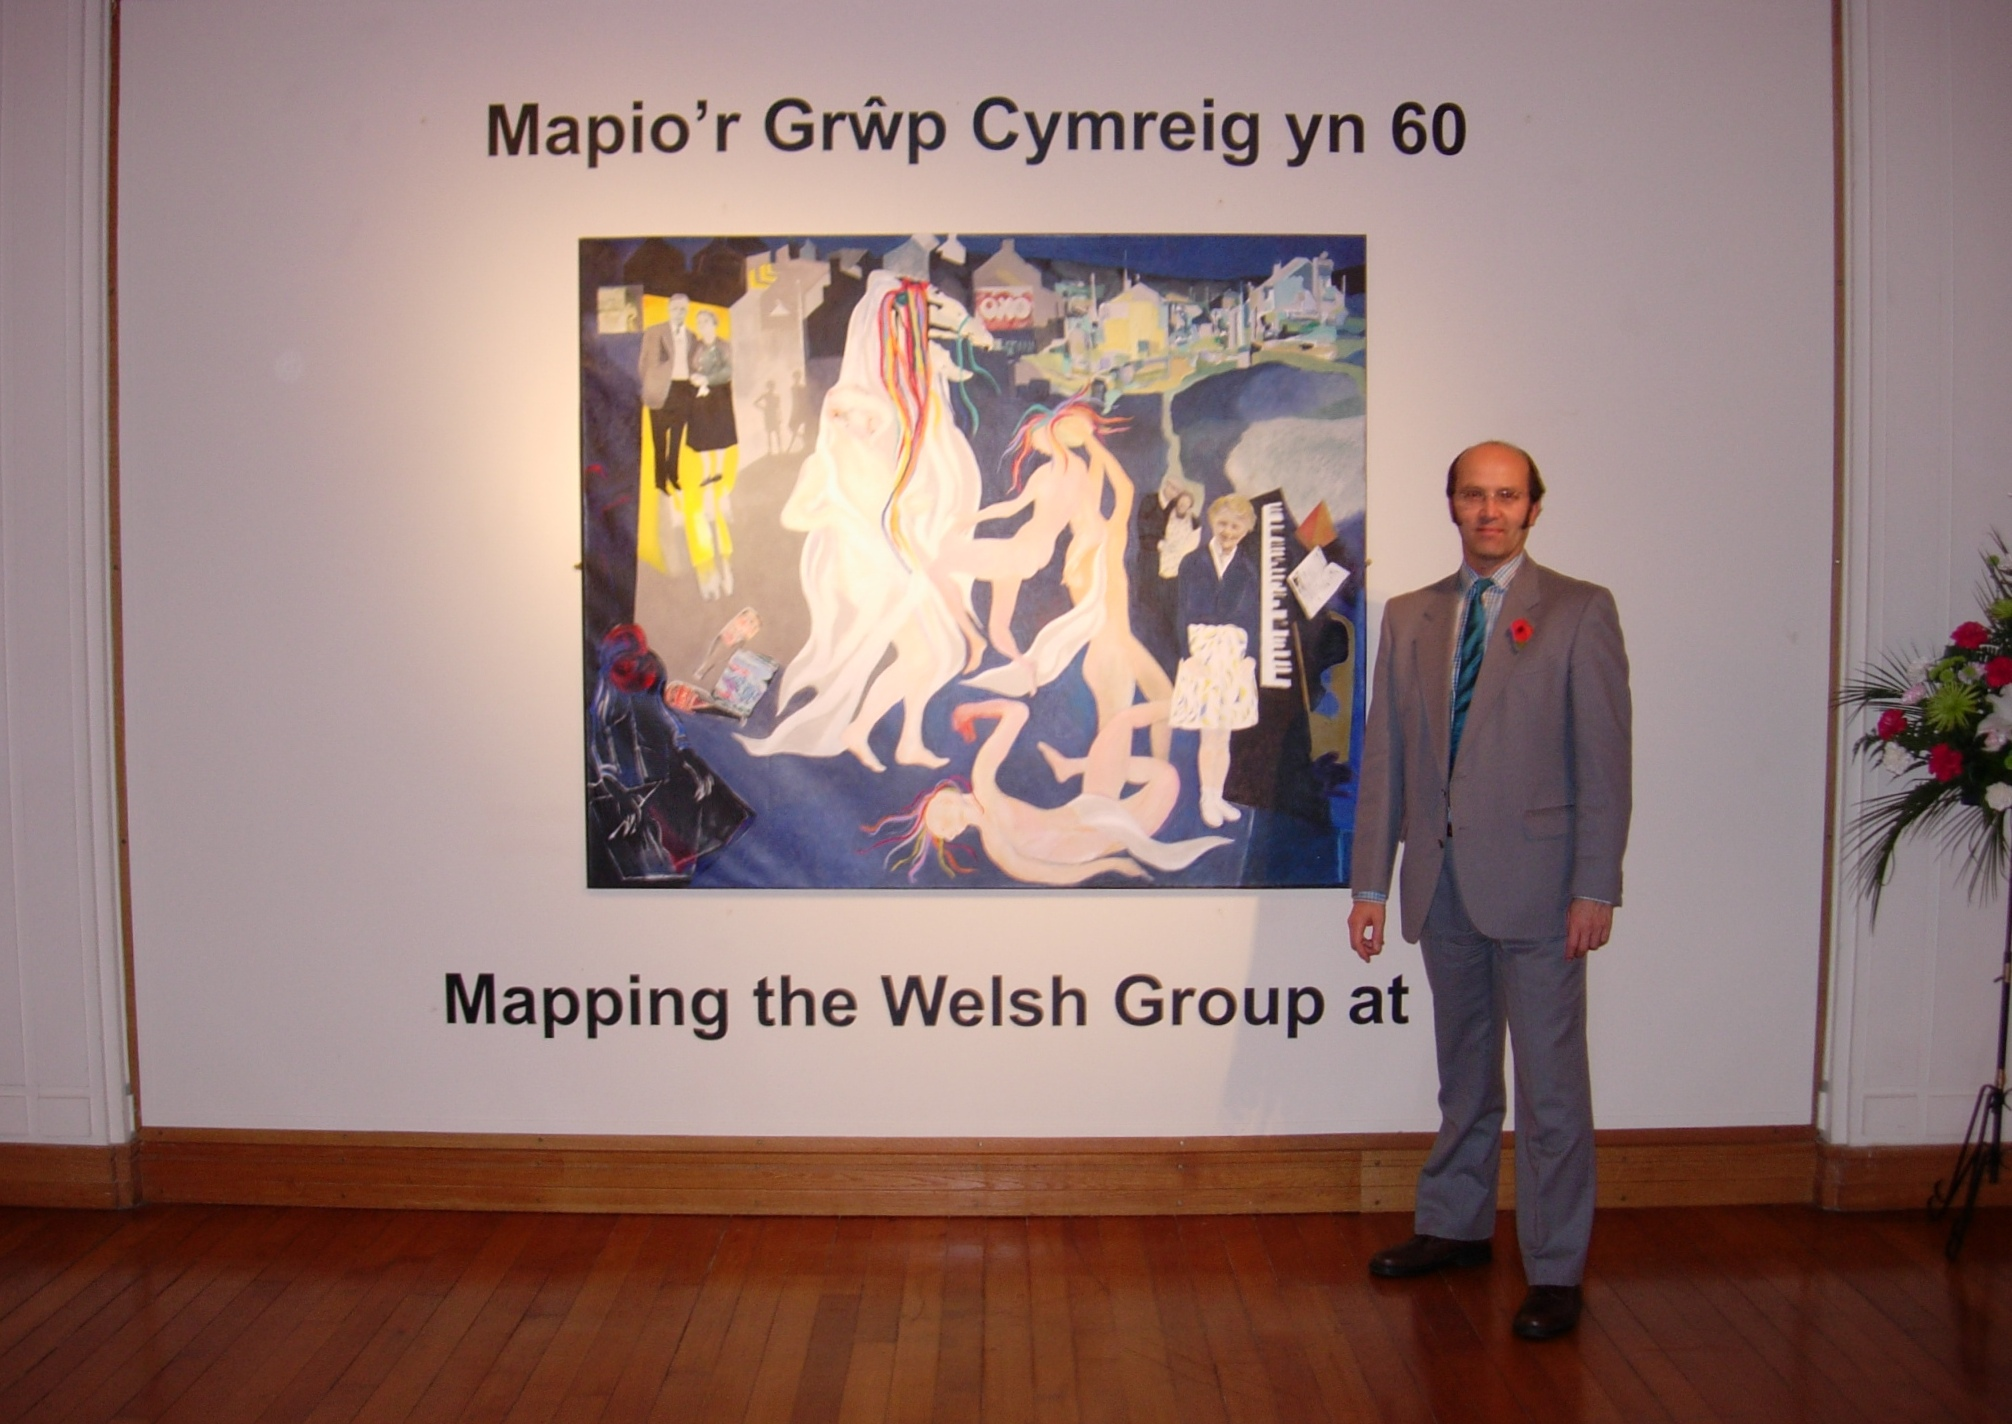 Ceri Thomas at the 'Mapping the Welsh Group at 60'/'Mapio'r Grwp Cymreig yn 60', National Library of Wales 2008